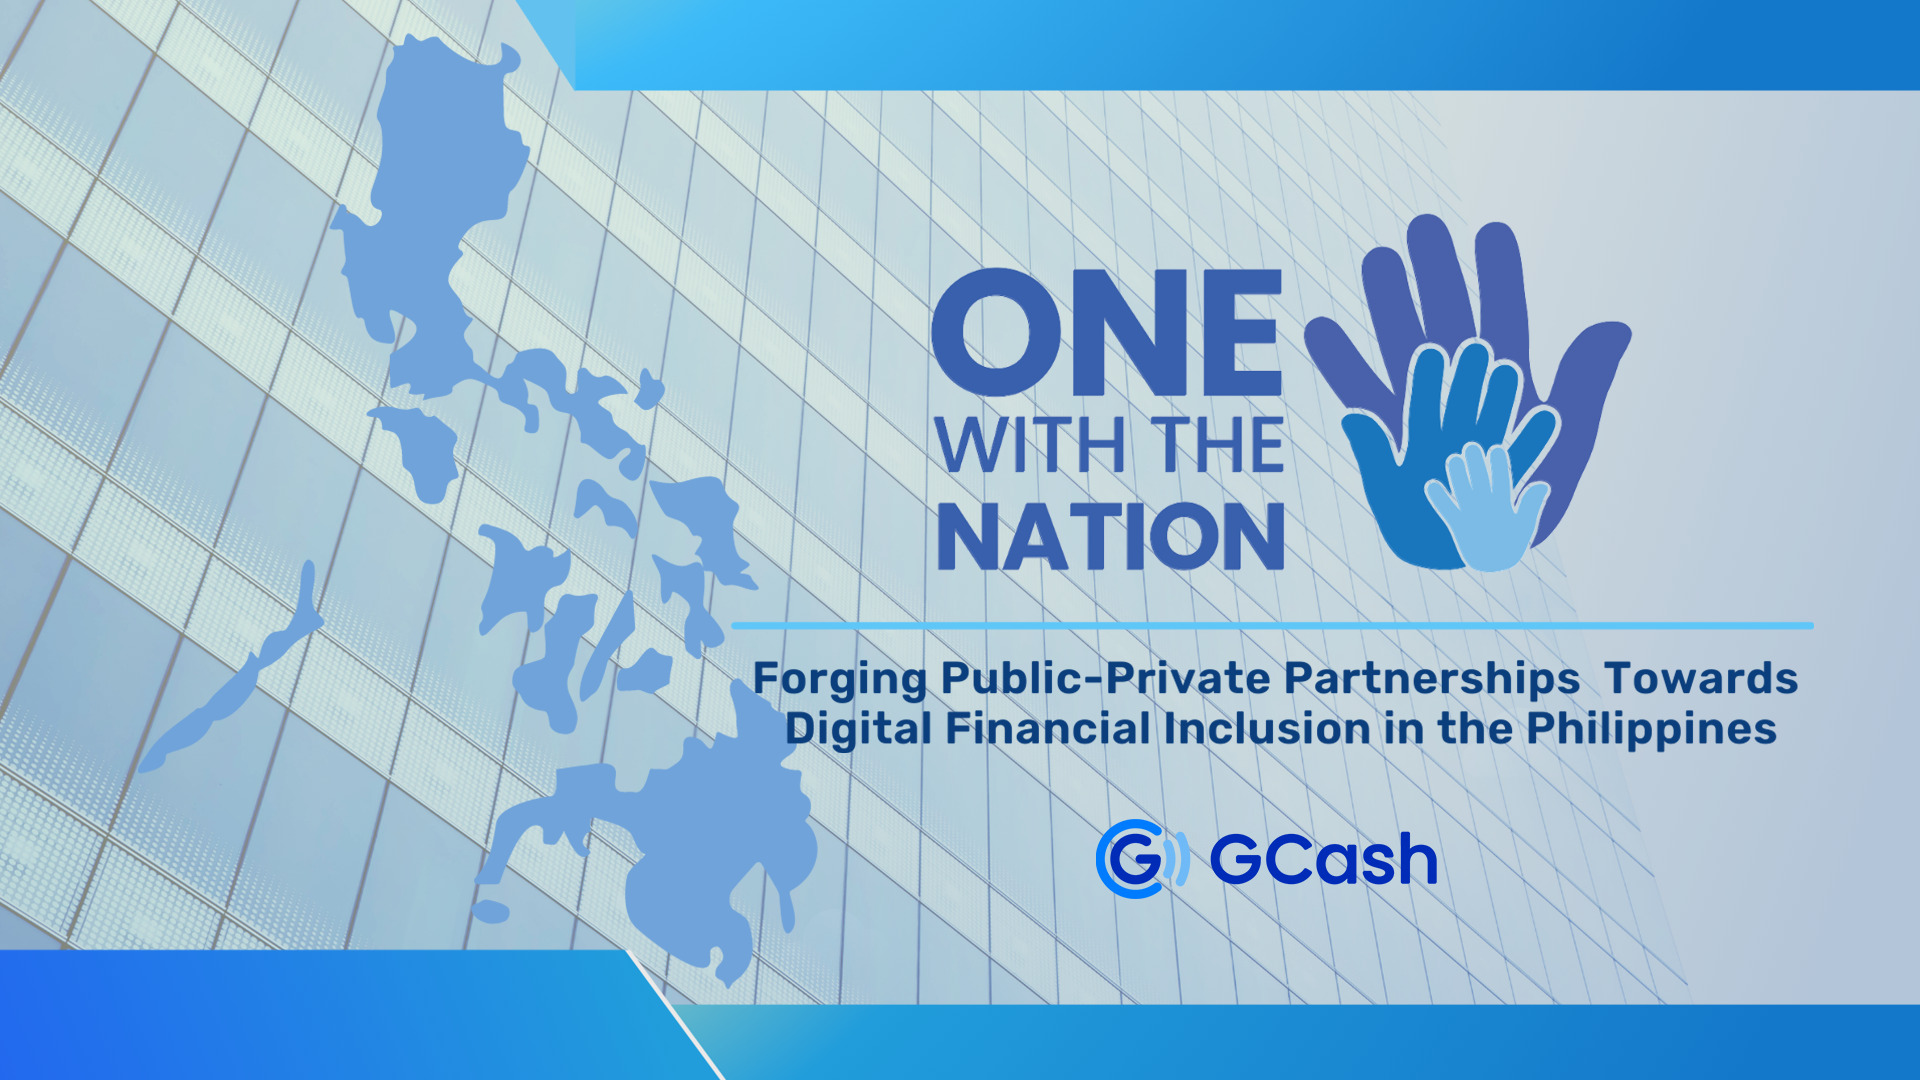 40M FILIPINOS and GROWING GCash strengthens partnership with the public sector